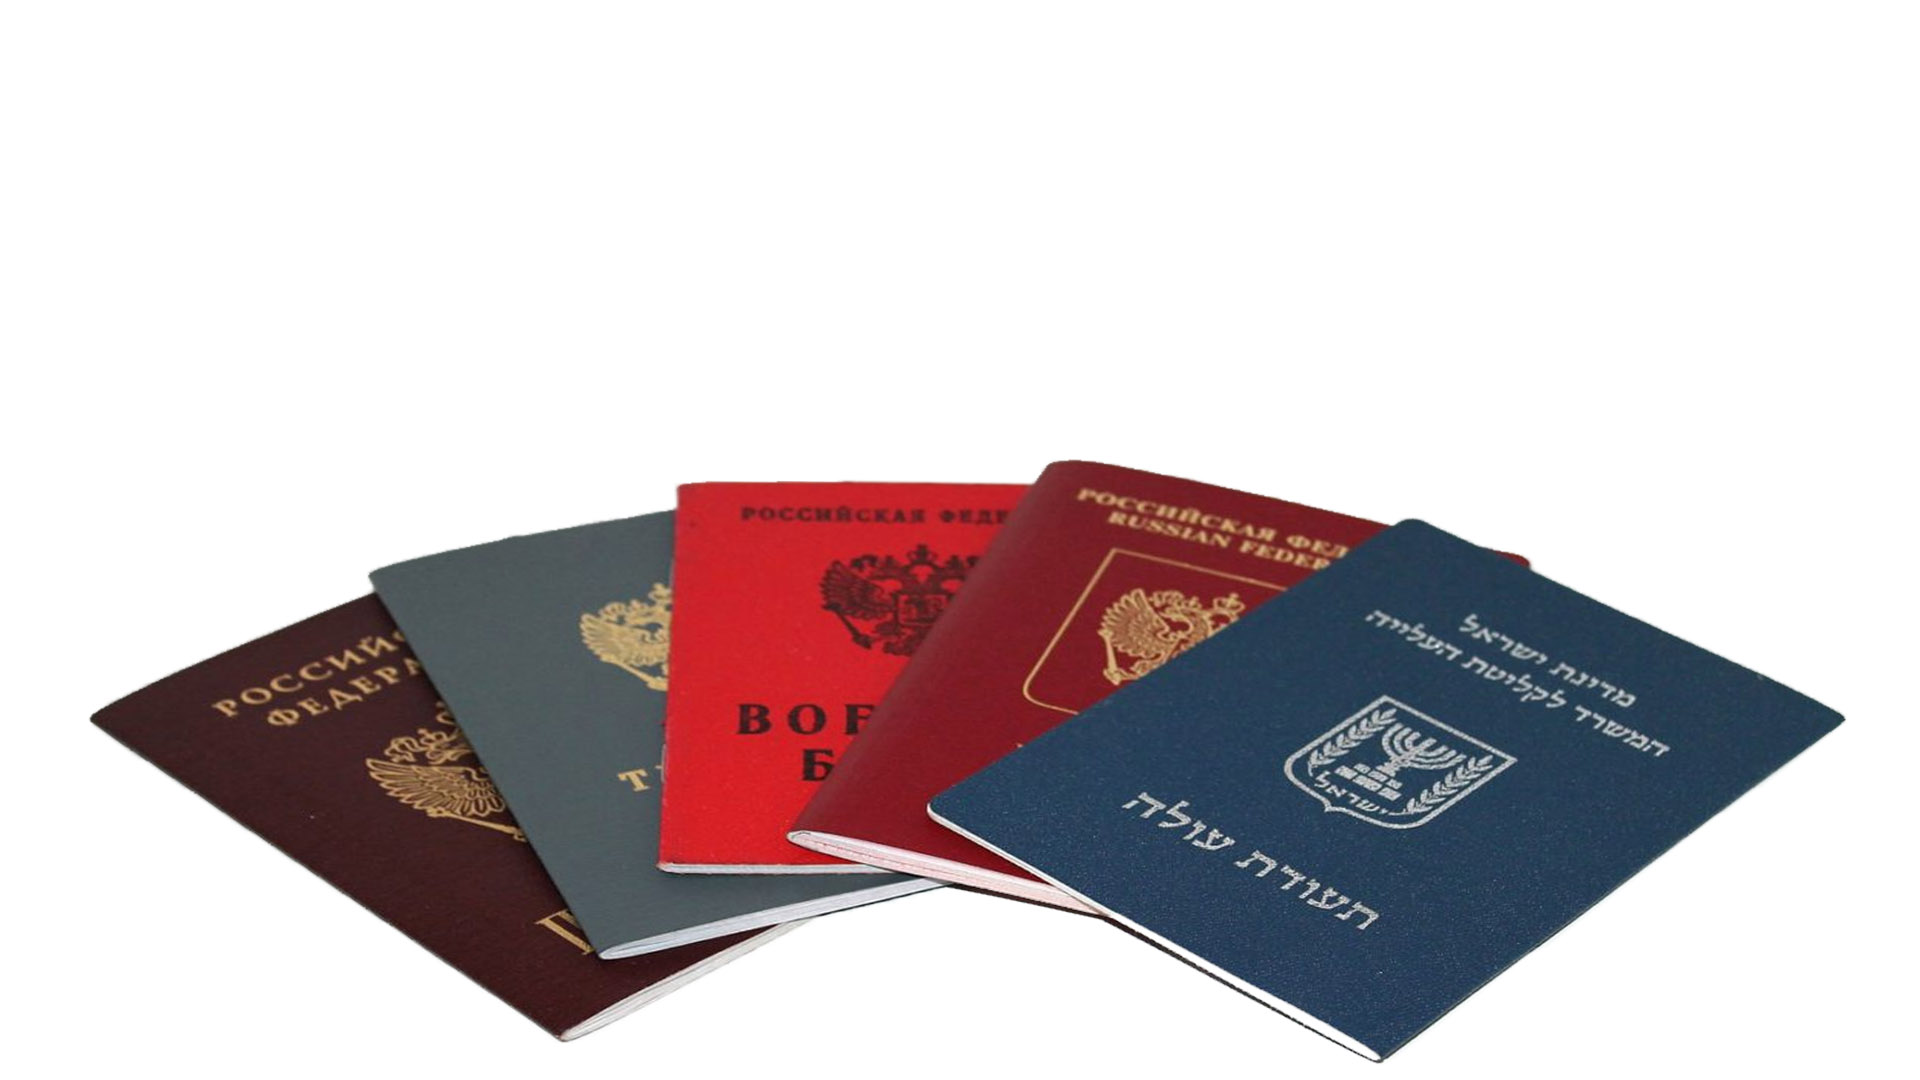 The three alternatives for getting a second legal passport